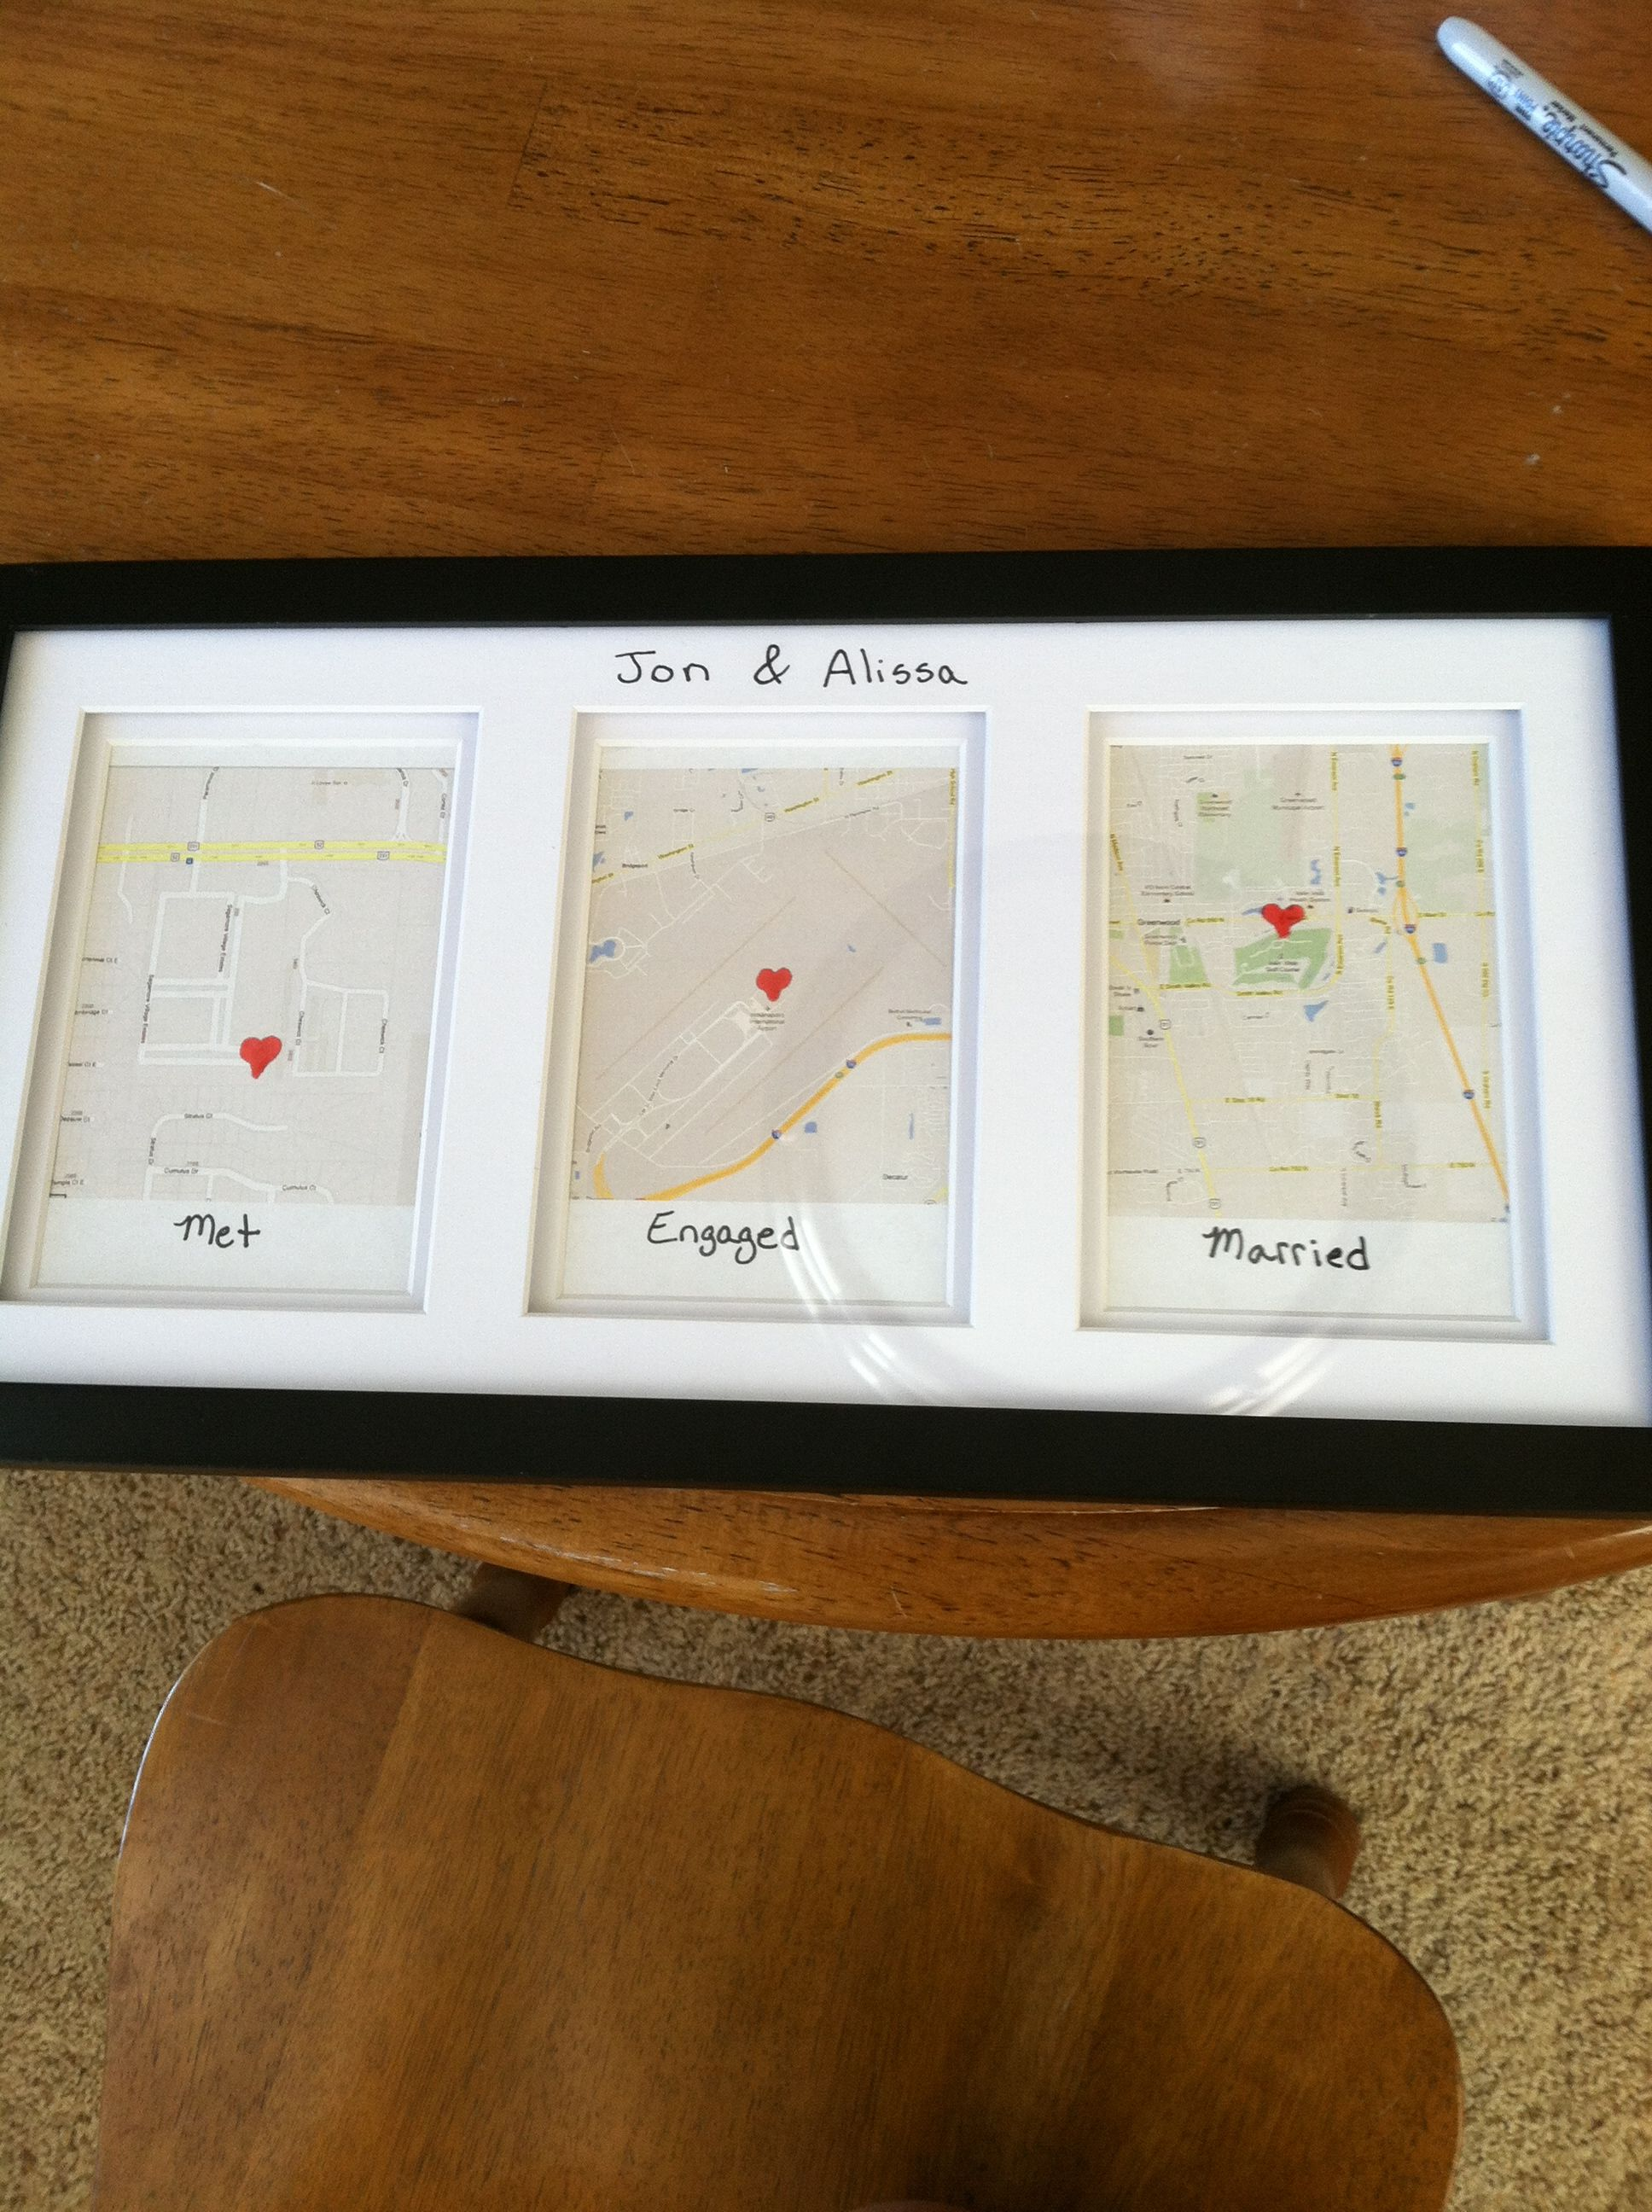 couples bridal shower gift ideas%0A super cute wedding present  google maps where you met  got engaged  and  married    Wedding GiftsWedding